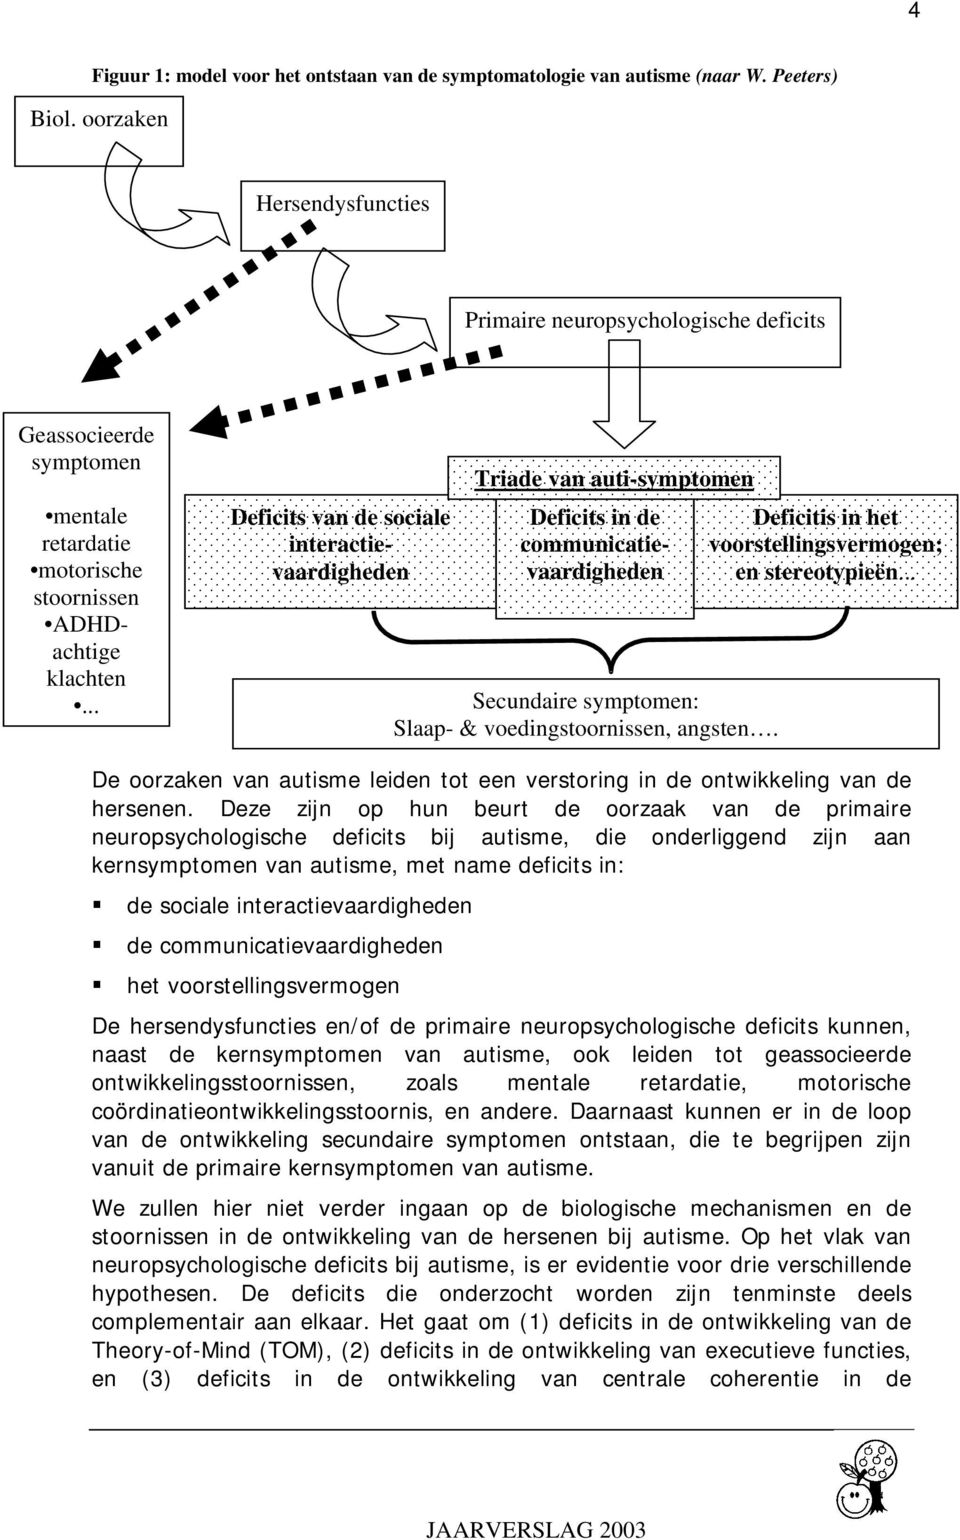 .. Deficits van de sociale interactievaardigheden Triade van auti-symptomen Deficits in de communicatievaardigheden Secundaire symptomen: Slaap- & voedingstoornissen, angsten.